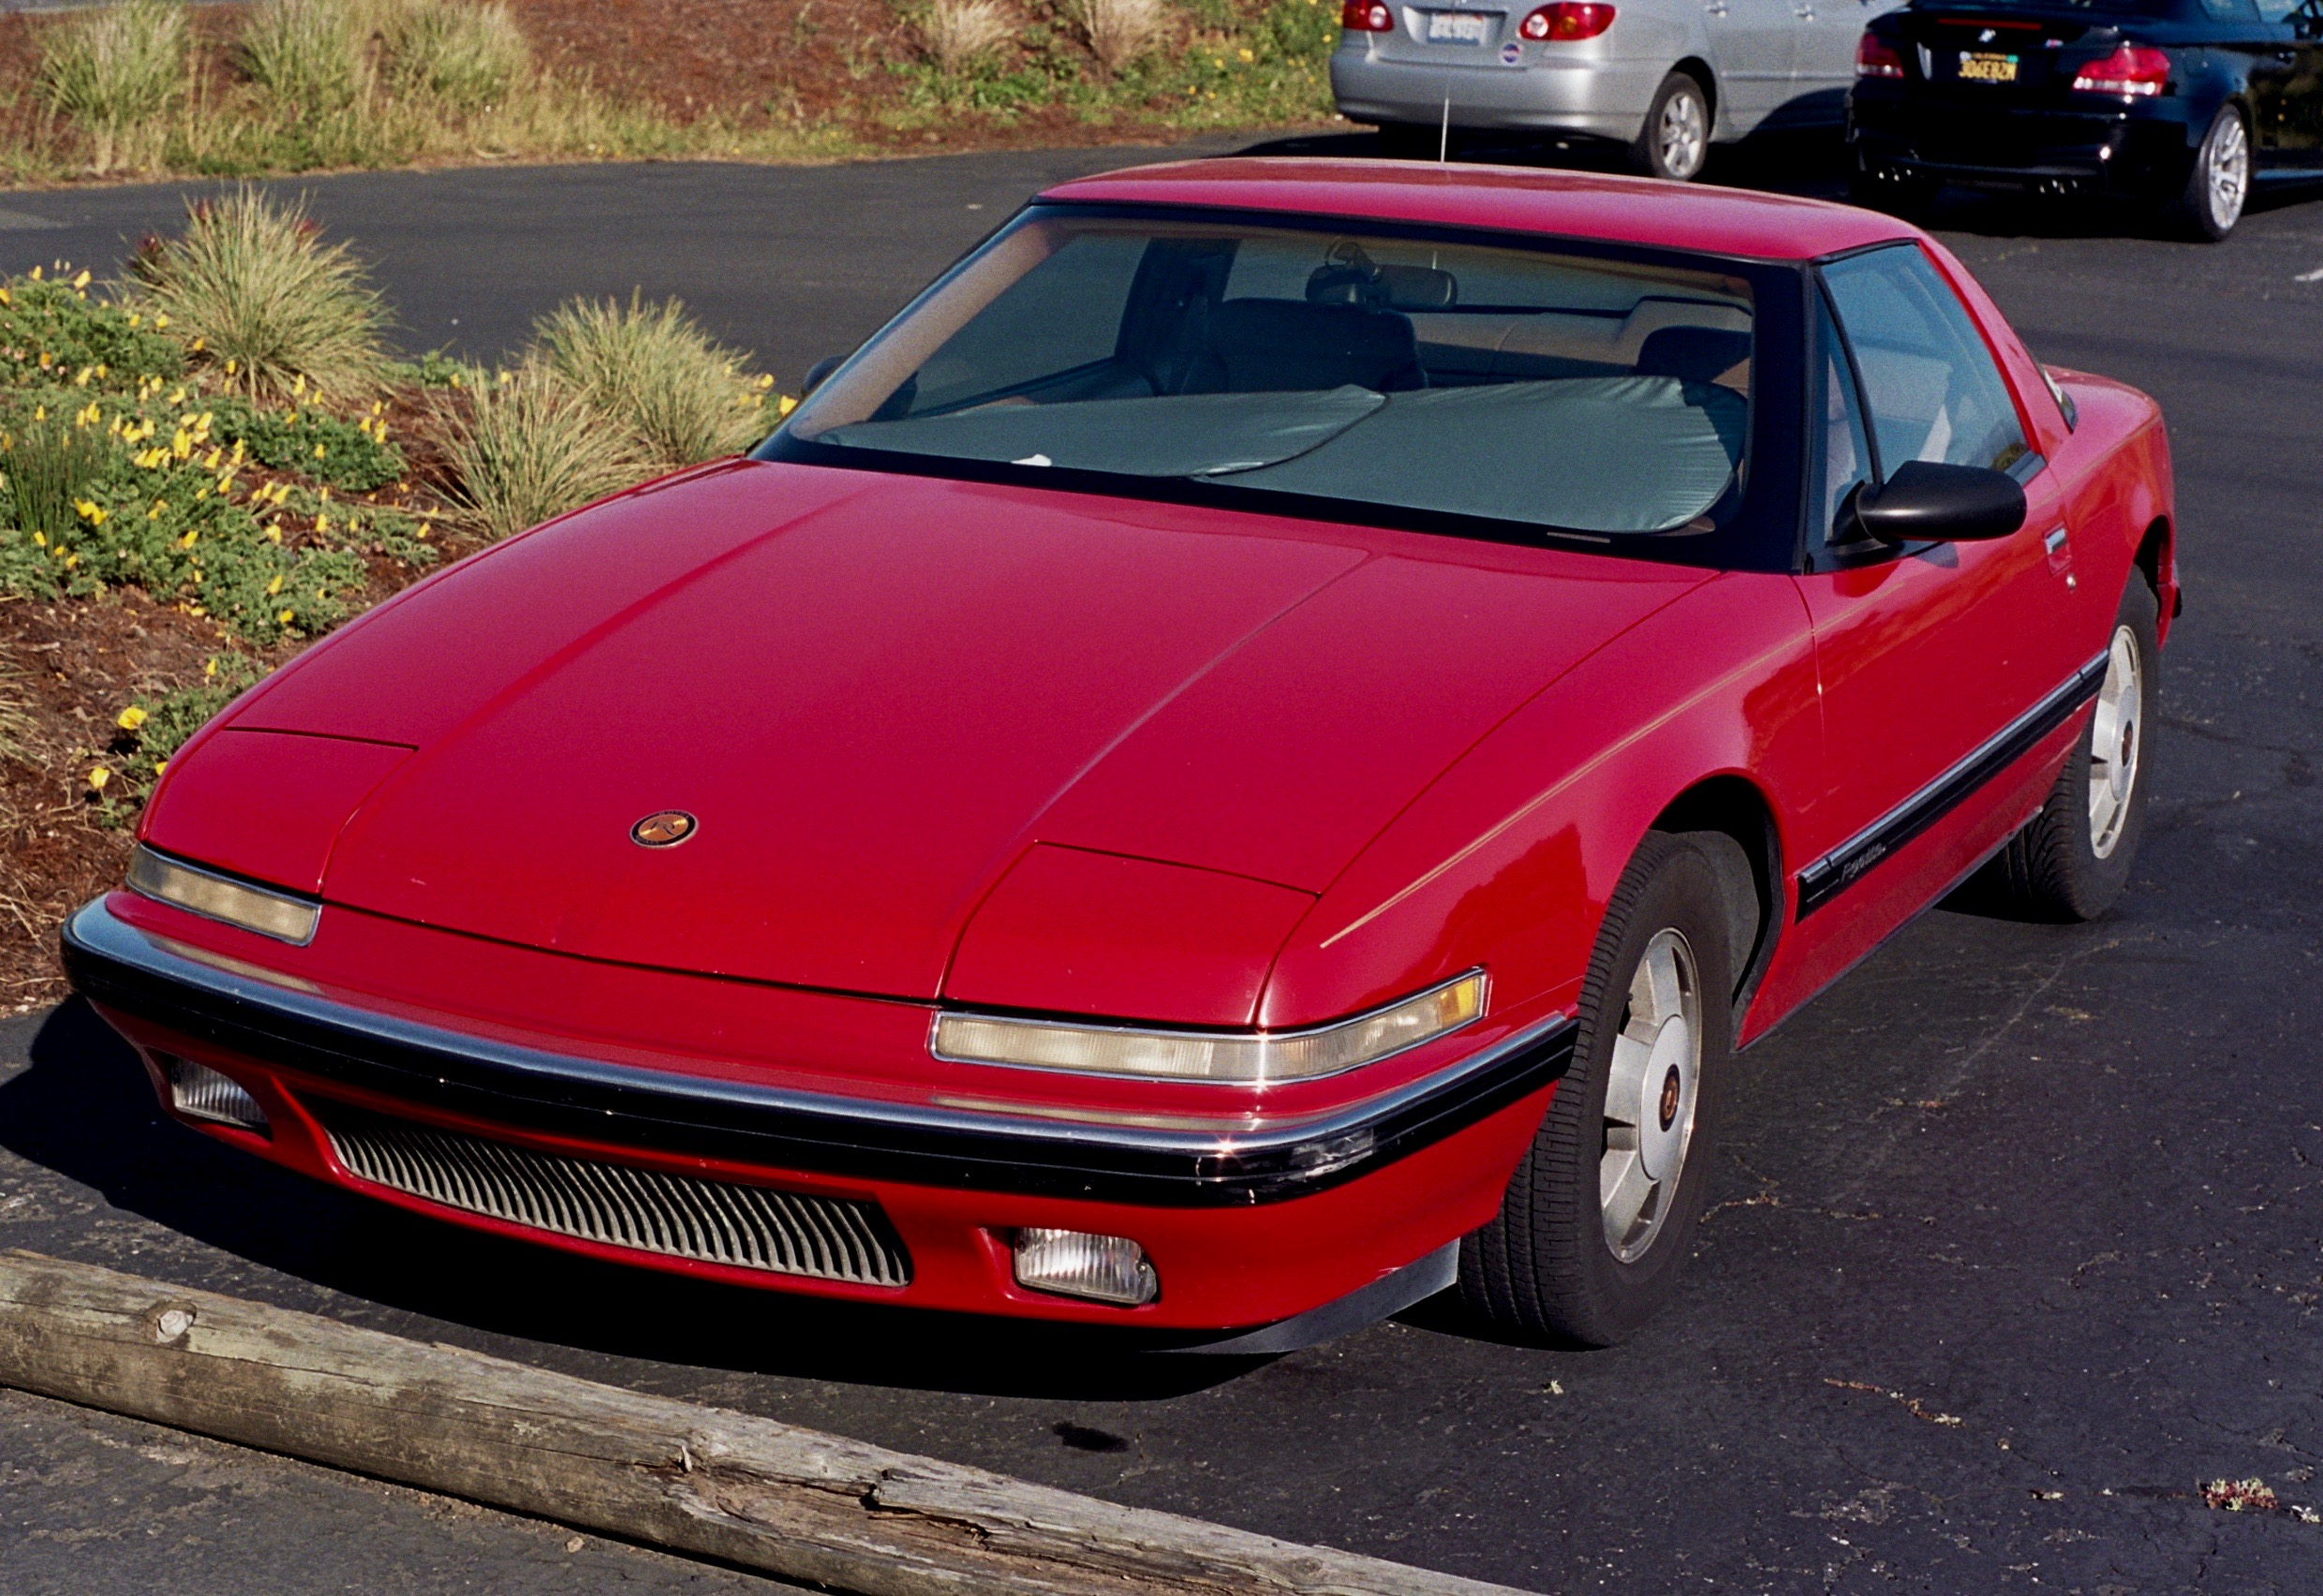 Blast from my past: The Buick Reatta Coupe